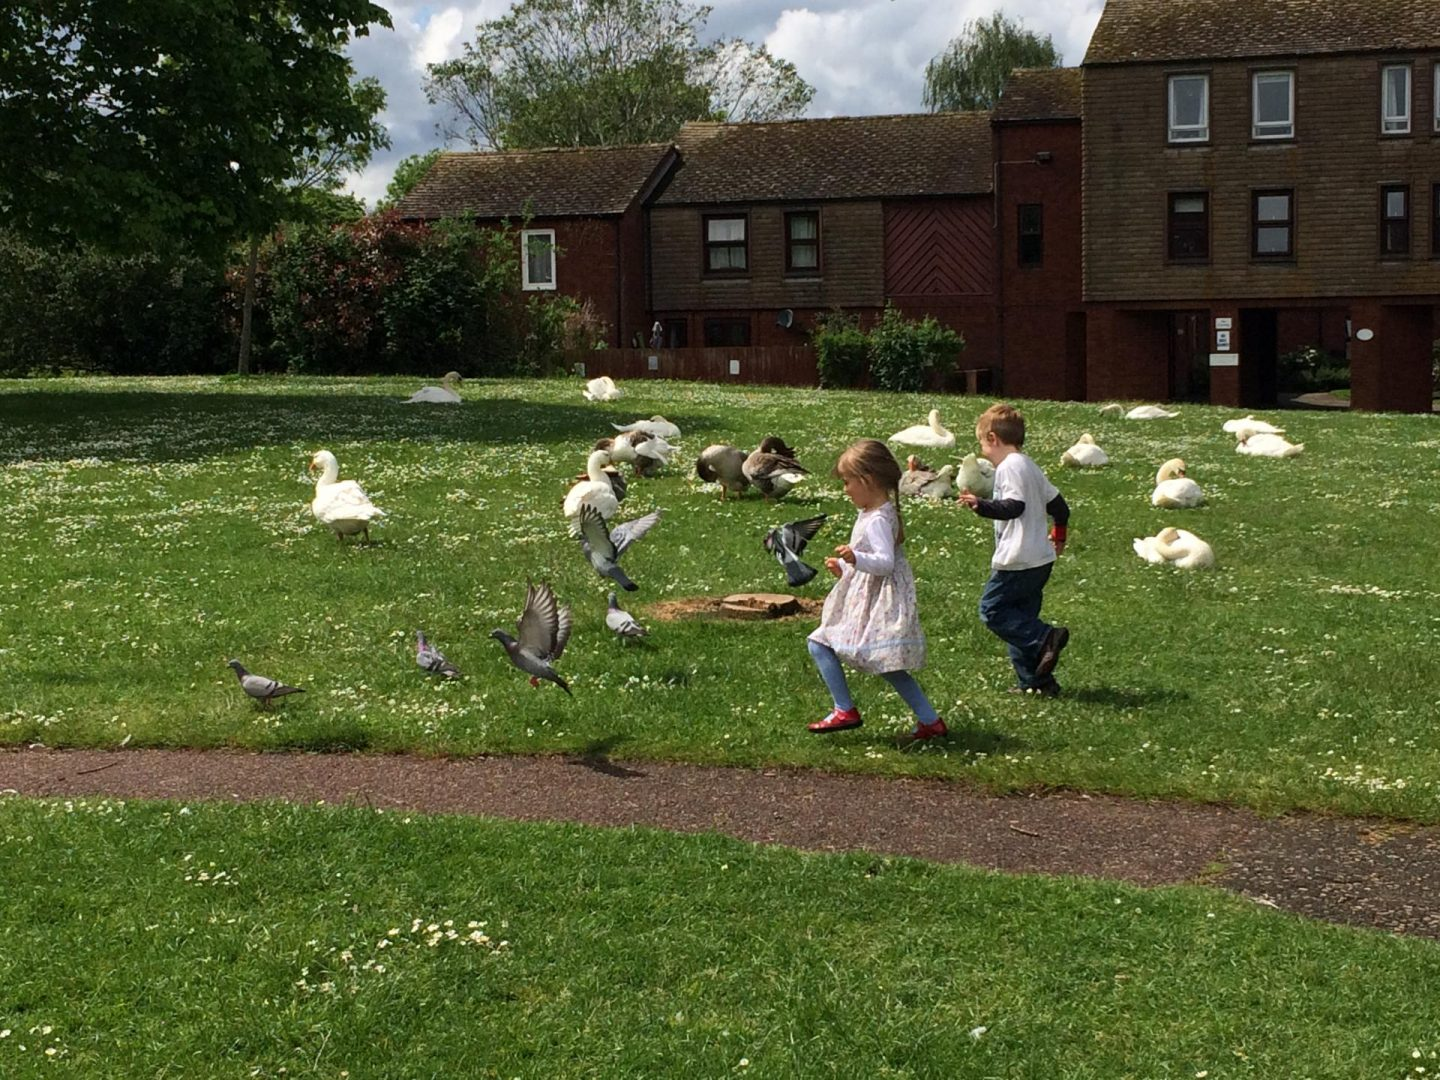 two childre outside in a field chasing birds on a playdate